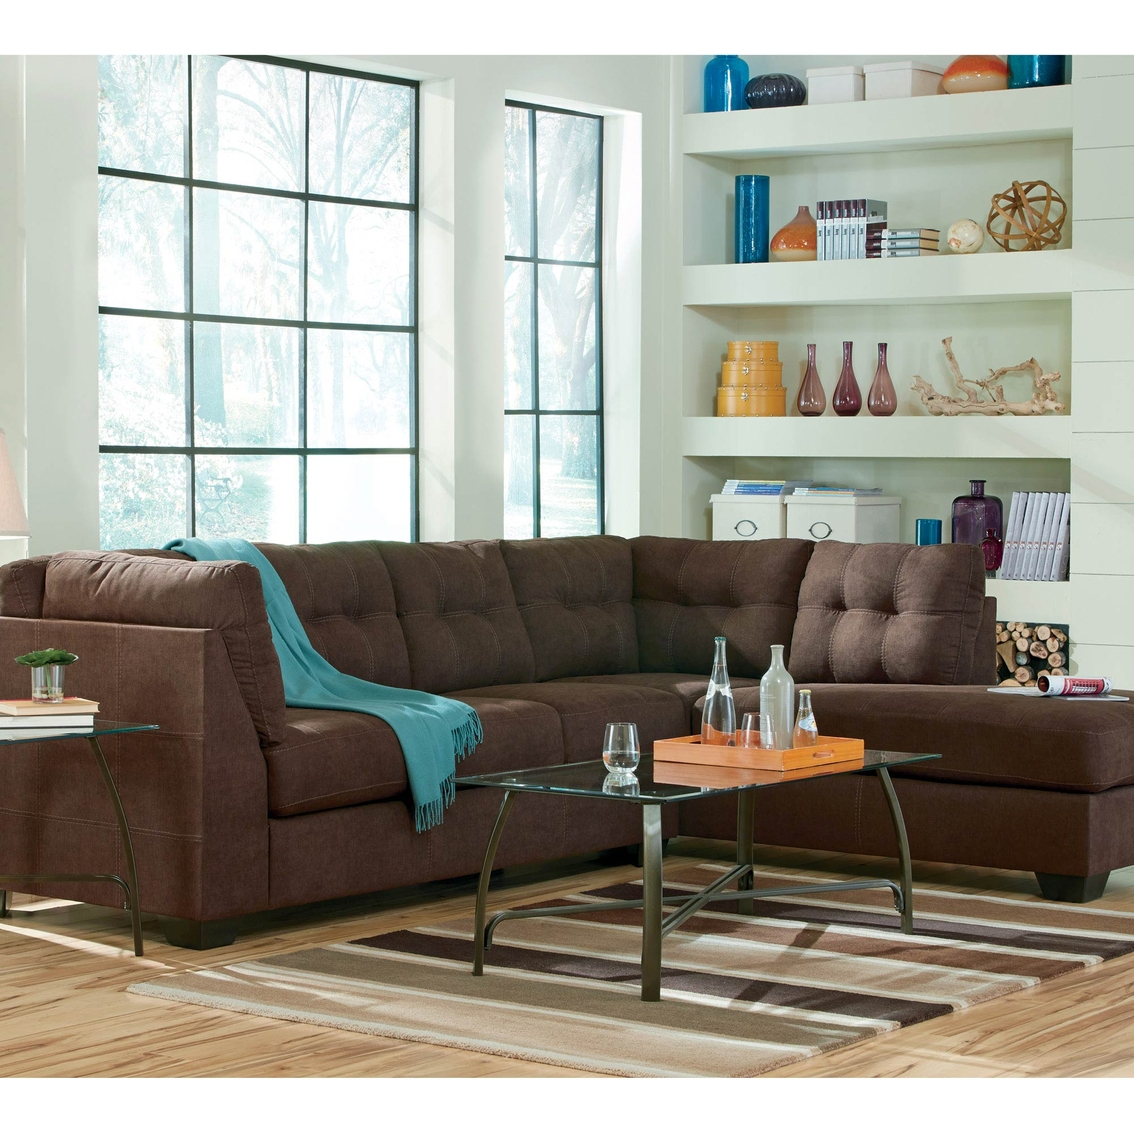 Well Liked Meyer 3 Piece Sectionals With Laf Chaise With Benchcraft Maier 2 Pc (View 11 of 20)